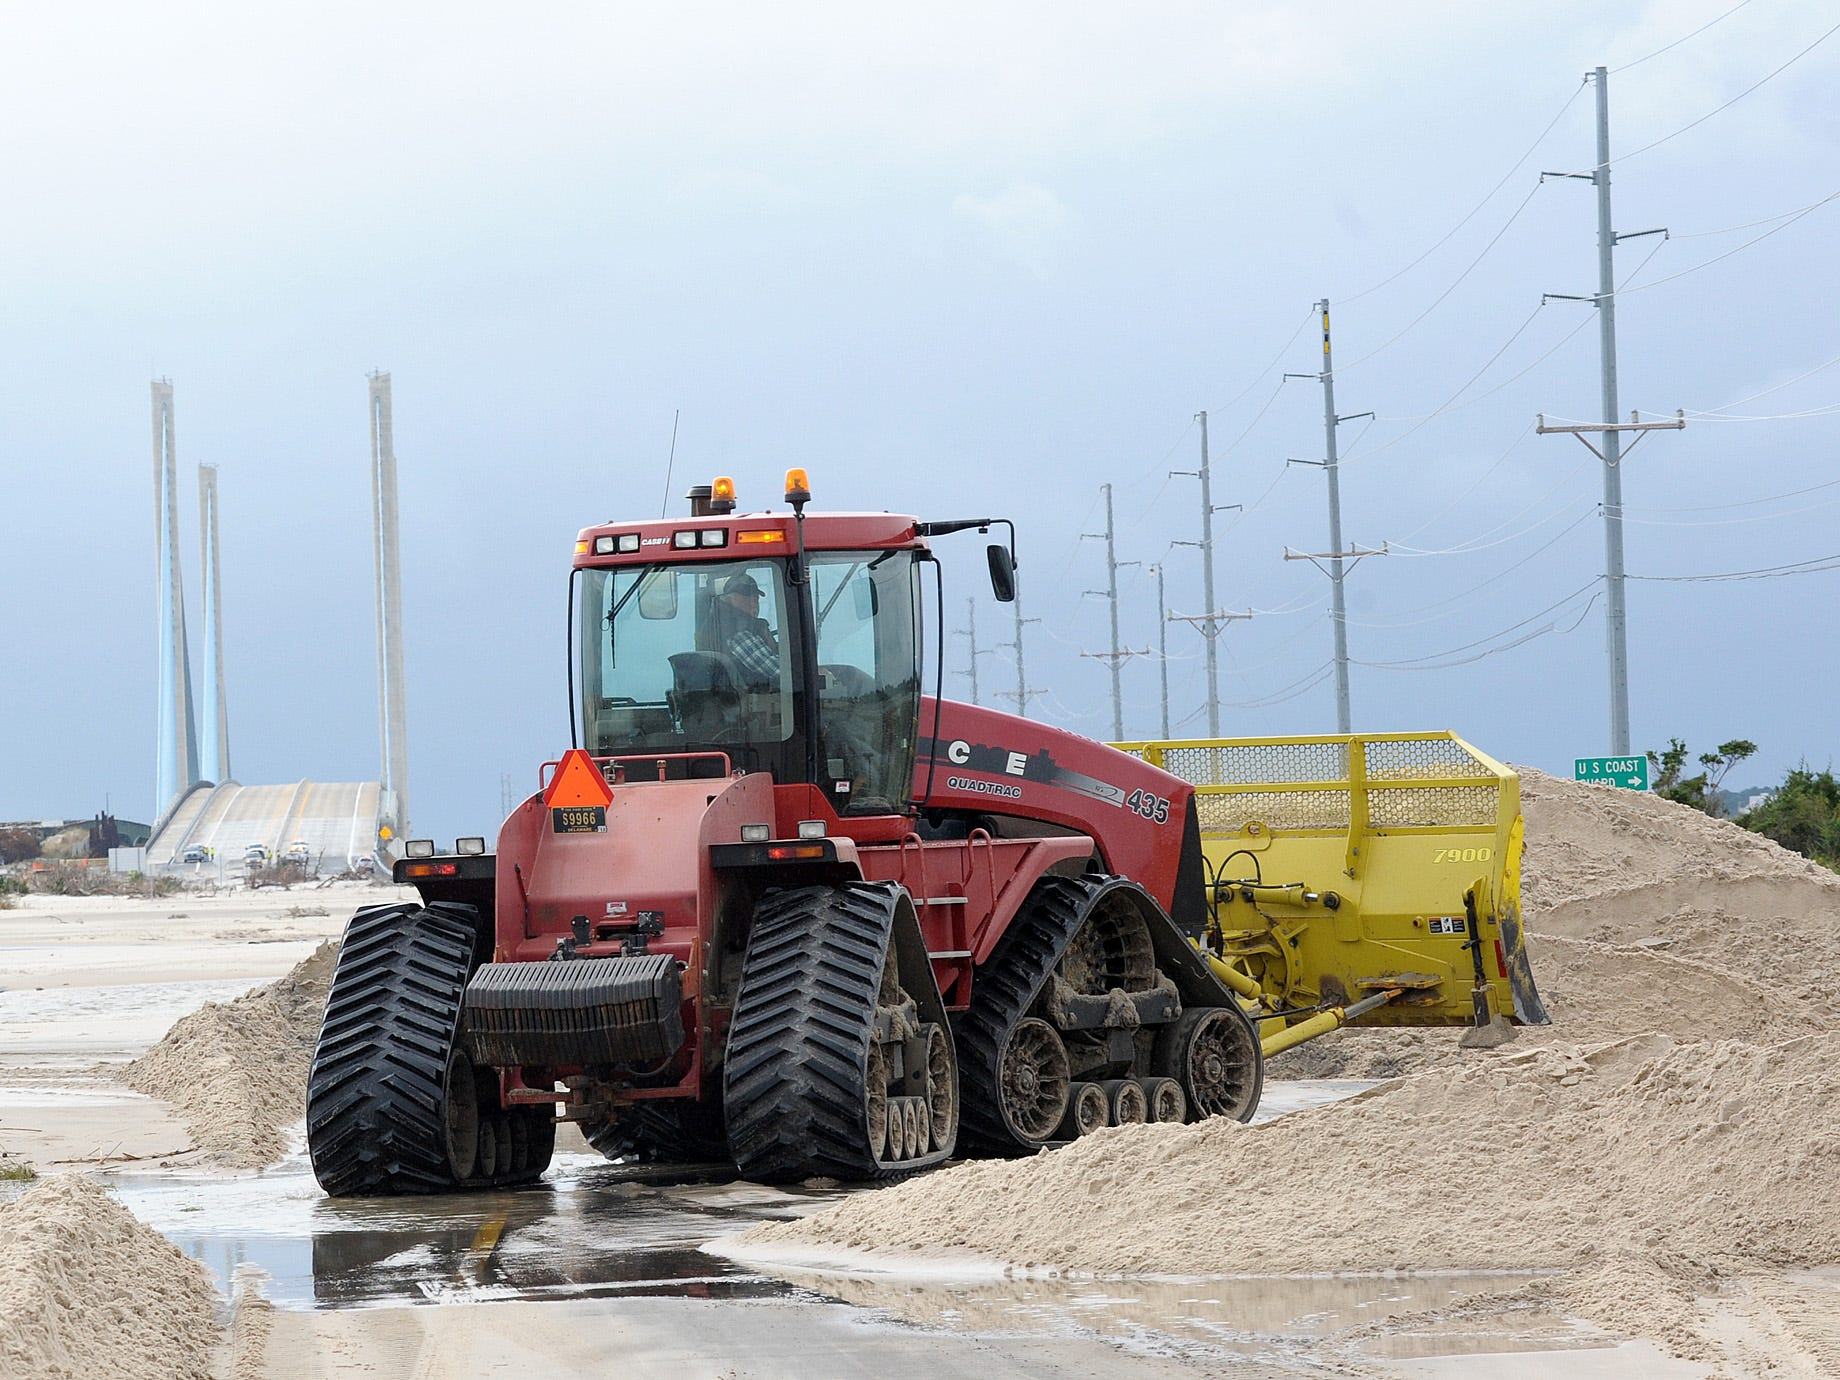 State crews start to work on the damage to the dune line after Hurricane Sandy in Rehoboth Beach, Del., Oct. 30, 2012.